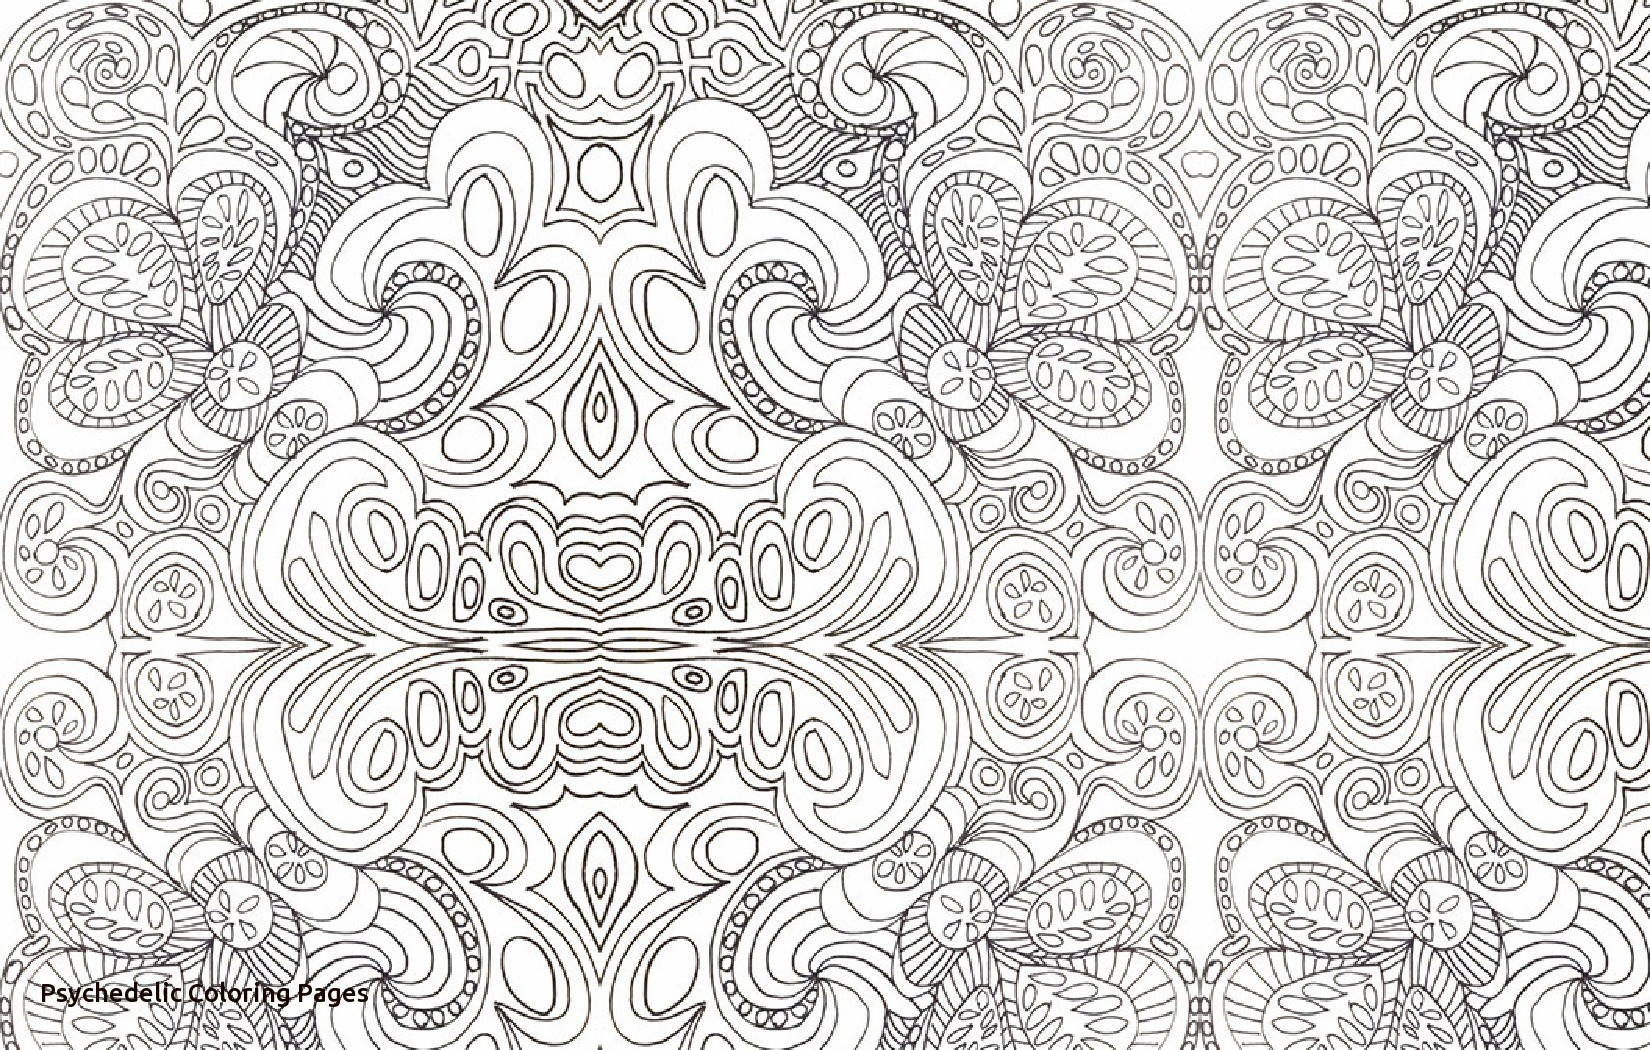 Trippy Coloring Pages Trippy Coloring Pages Psychedelic With Art Free Printable Of Weed